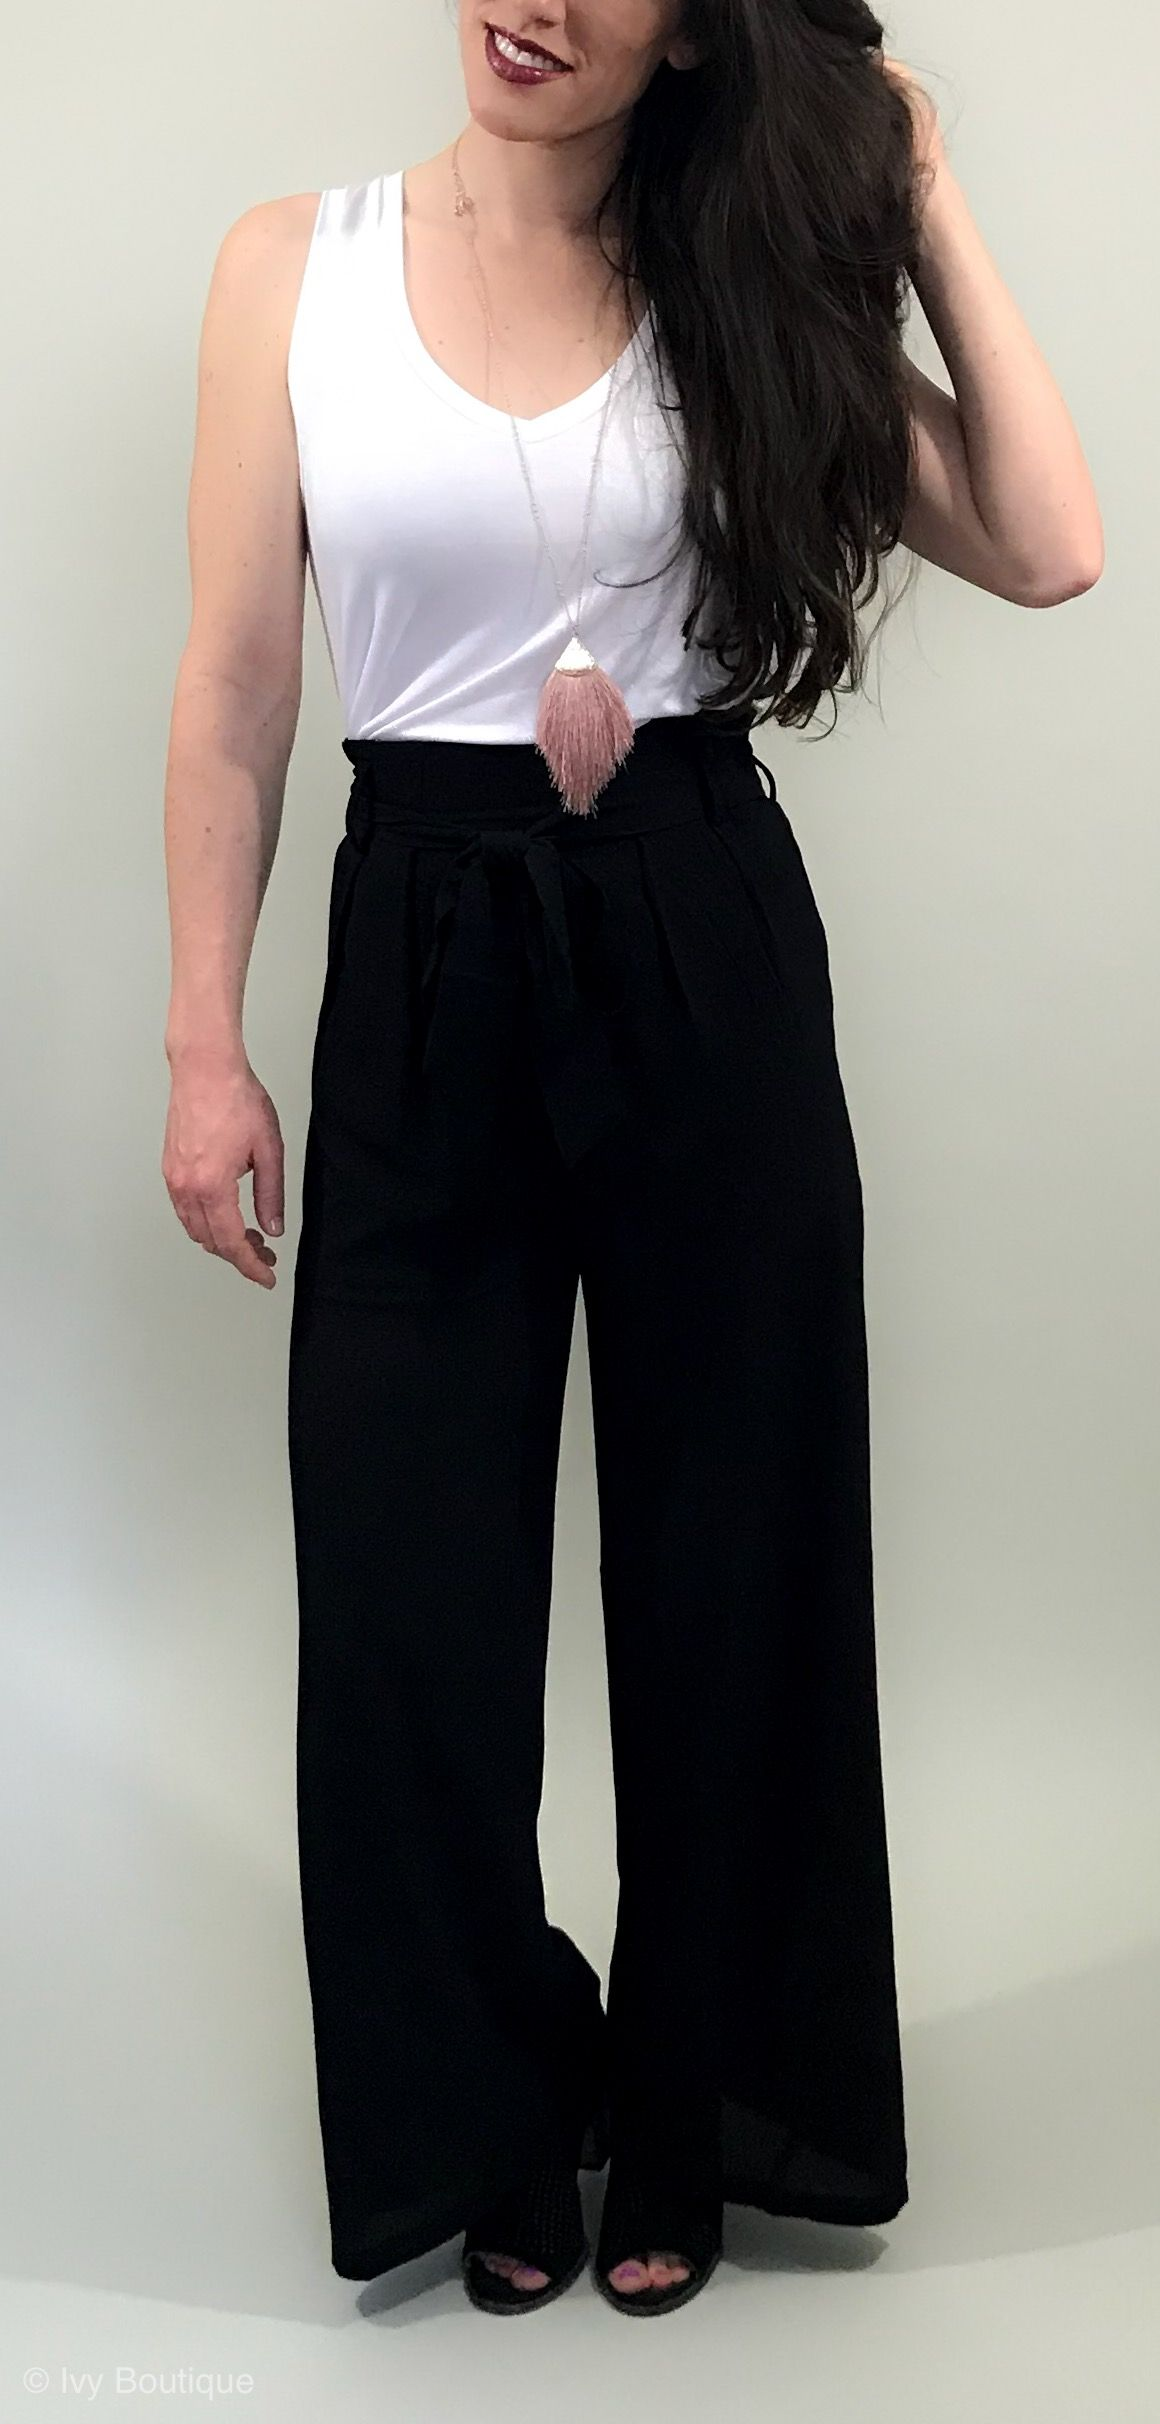 7ba0aac25609 Black pants with adorable tie in the front. Lightweight pants for your  summer work outfits.  summeroutfit  businesscasual  outfit  womensfashion